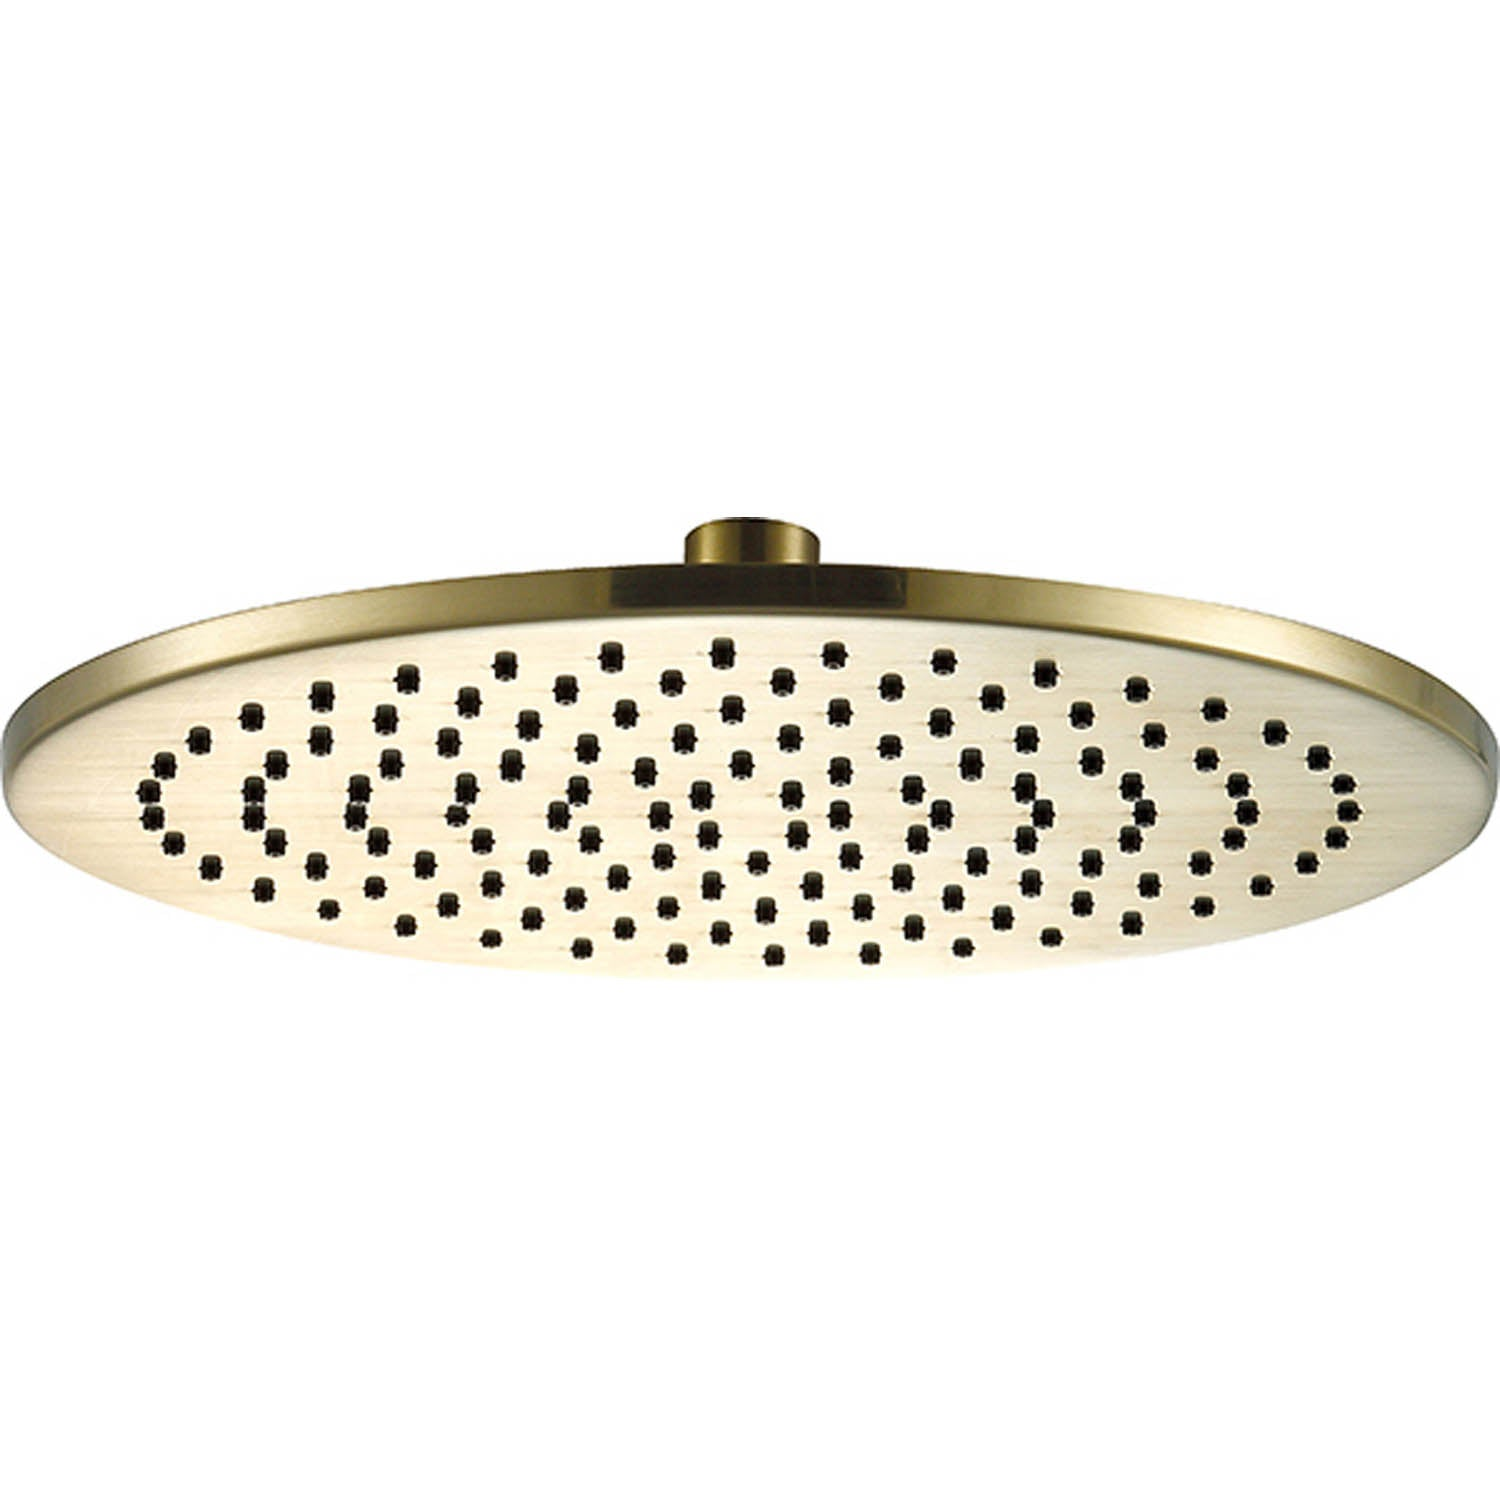 250mm Libero Rainwater Shower Head with a brushed brass finish on a white background